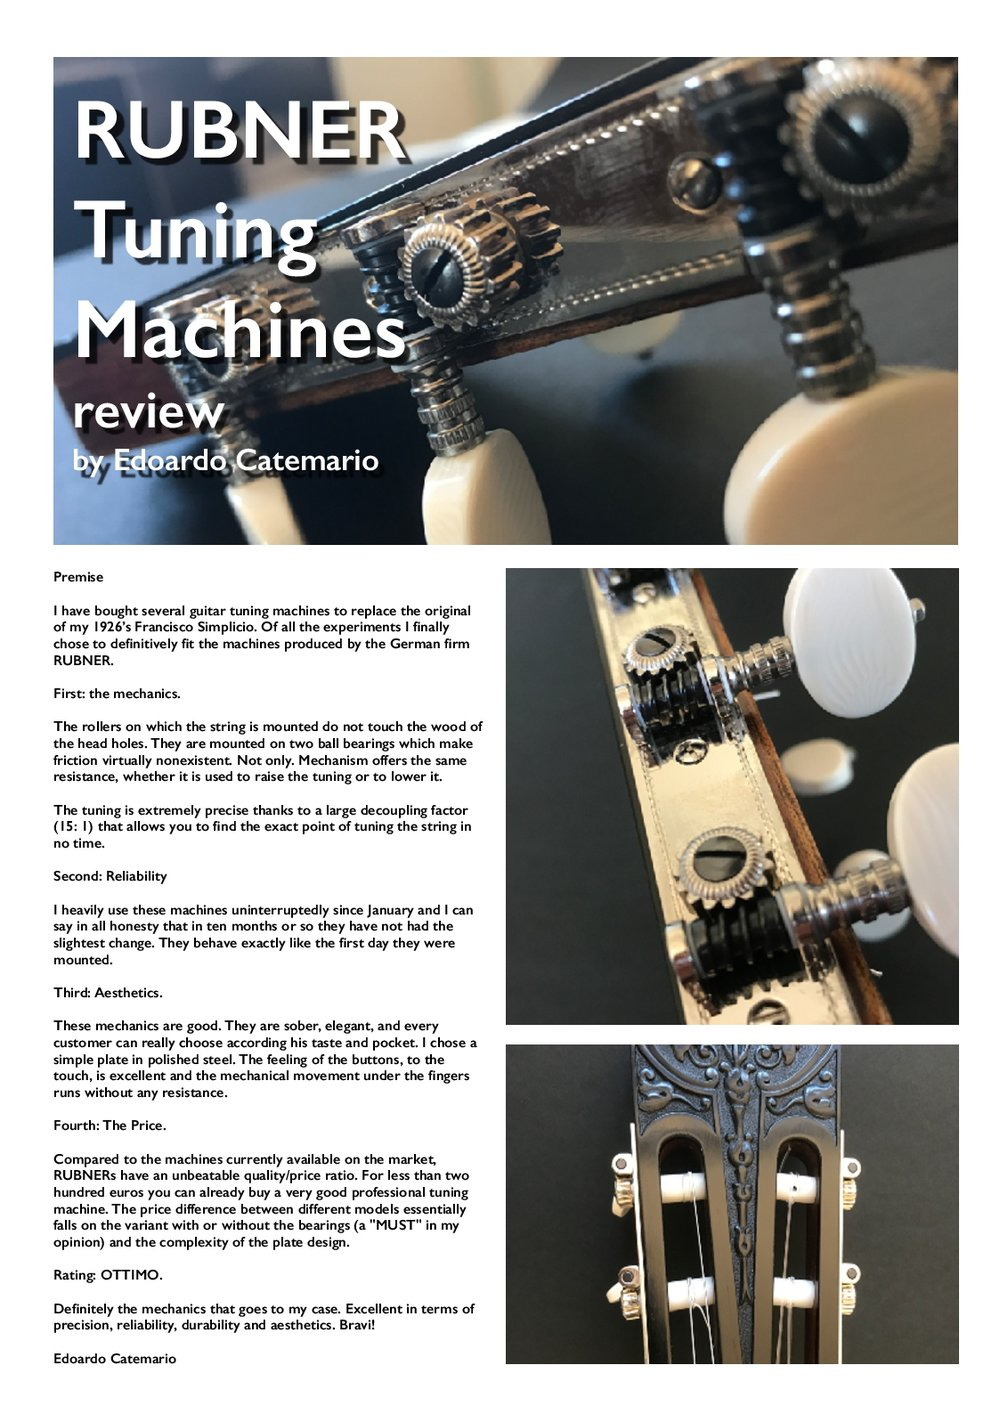 RUBNER tuning machines review.jpg